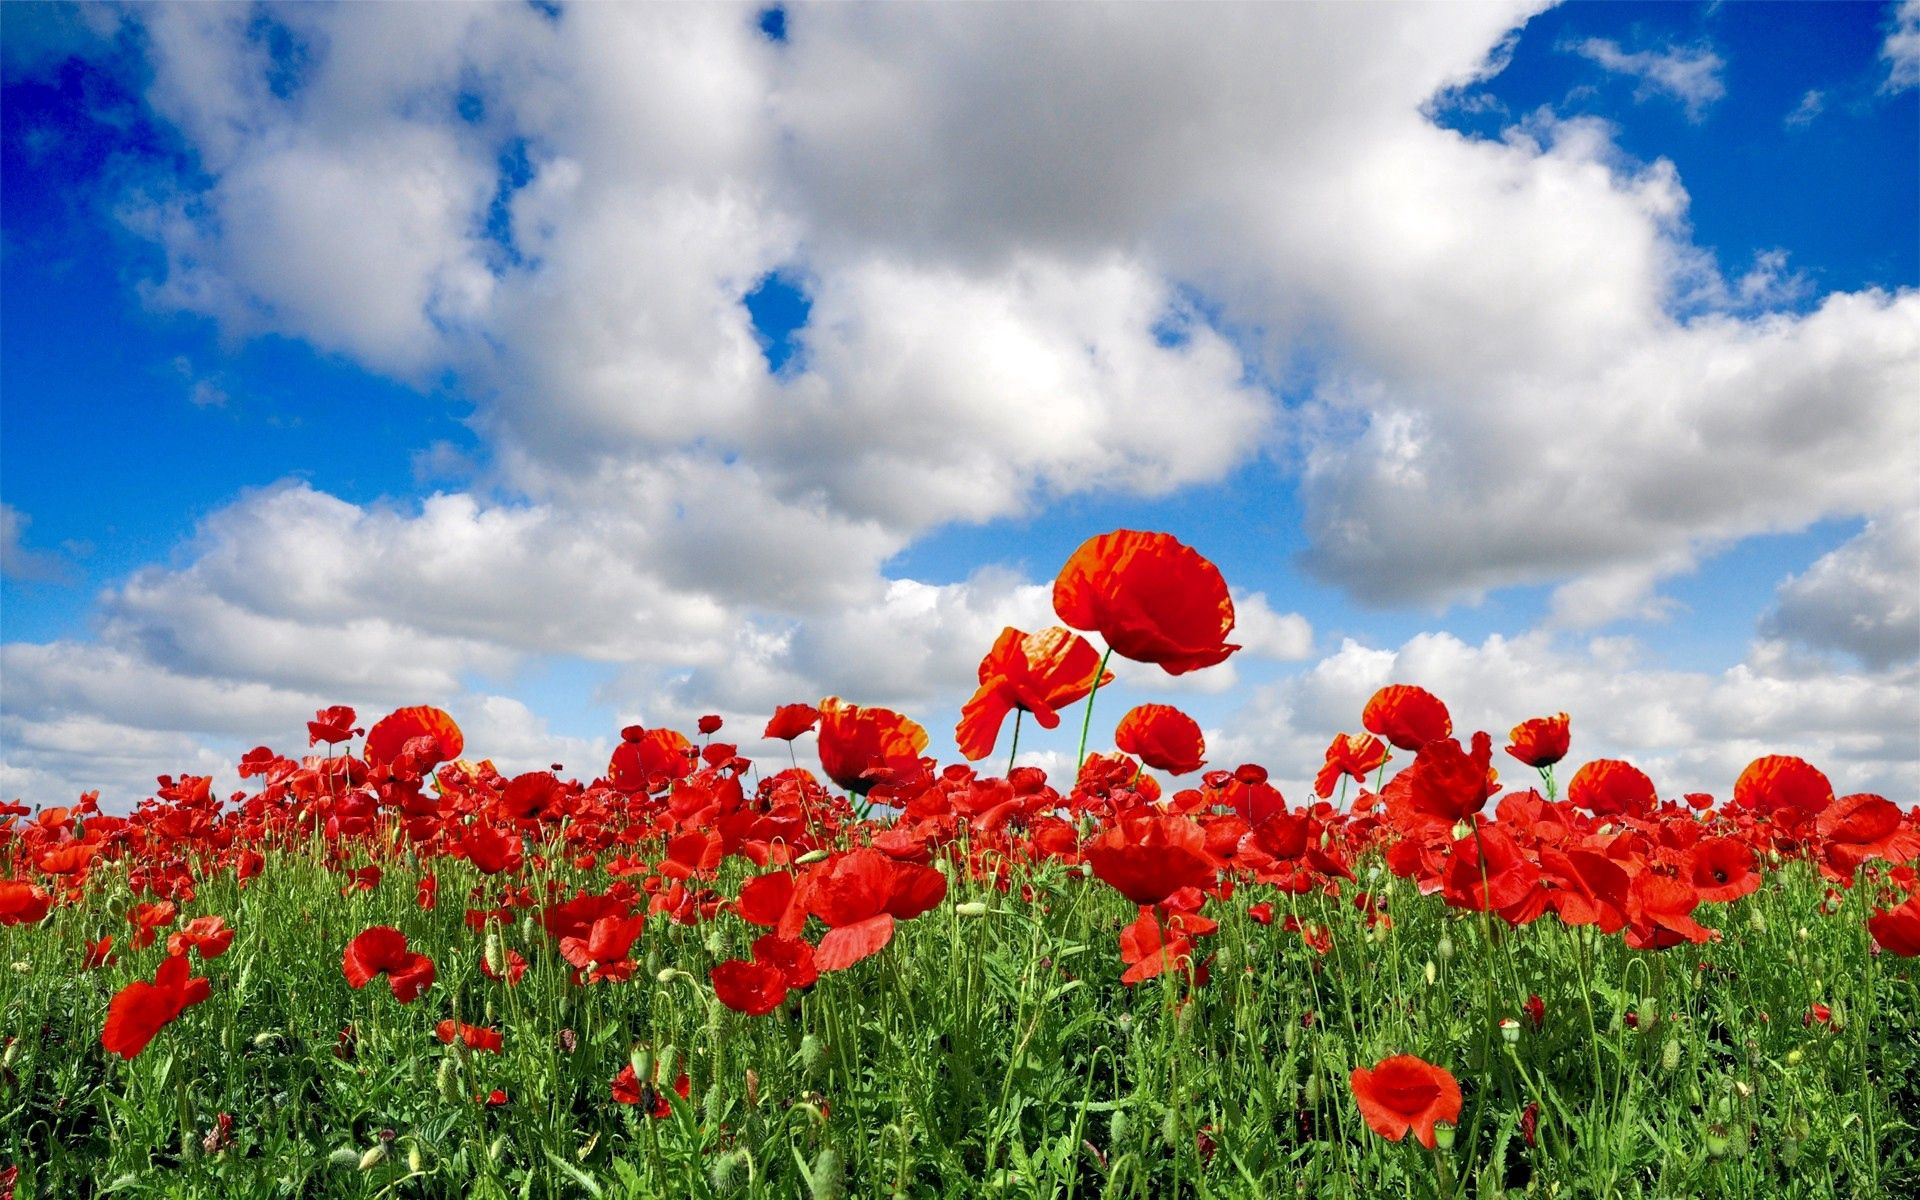 125422 Screensavers and Wallpapers Poppies for phone. Download Flowers, Sky, Poppies, Clouds, Summer, Greens, Field pictures for free